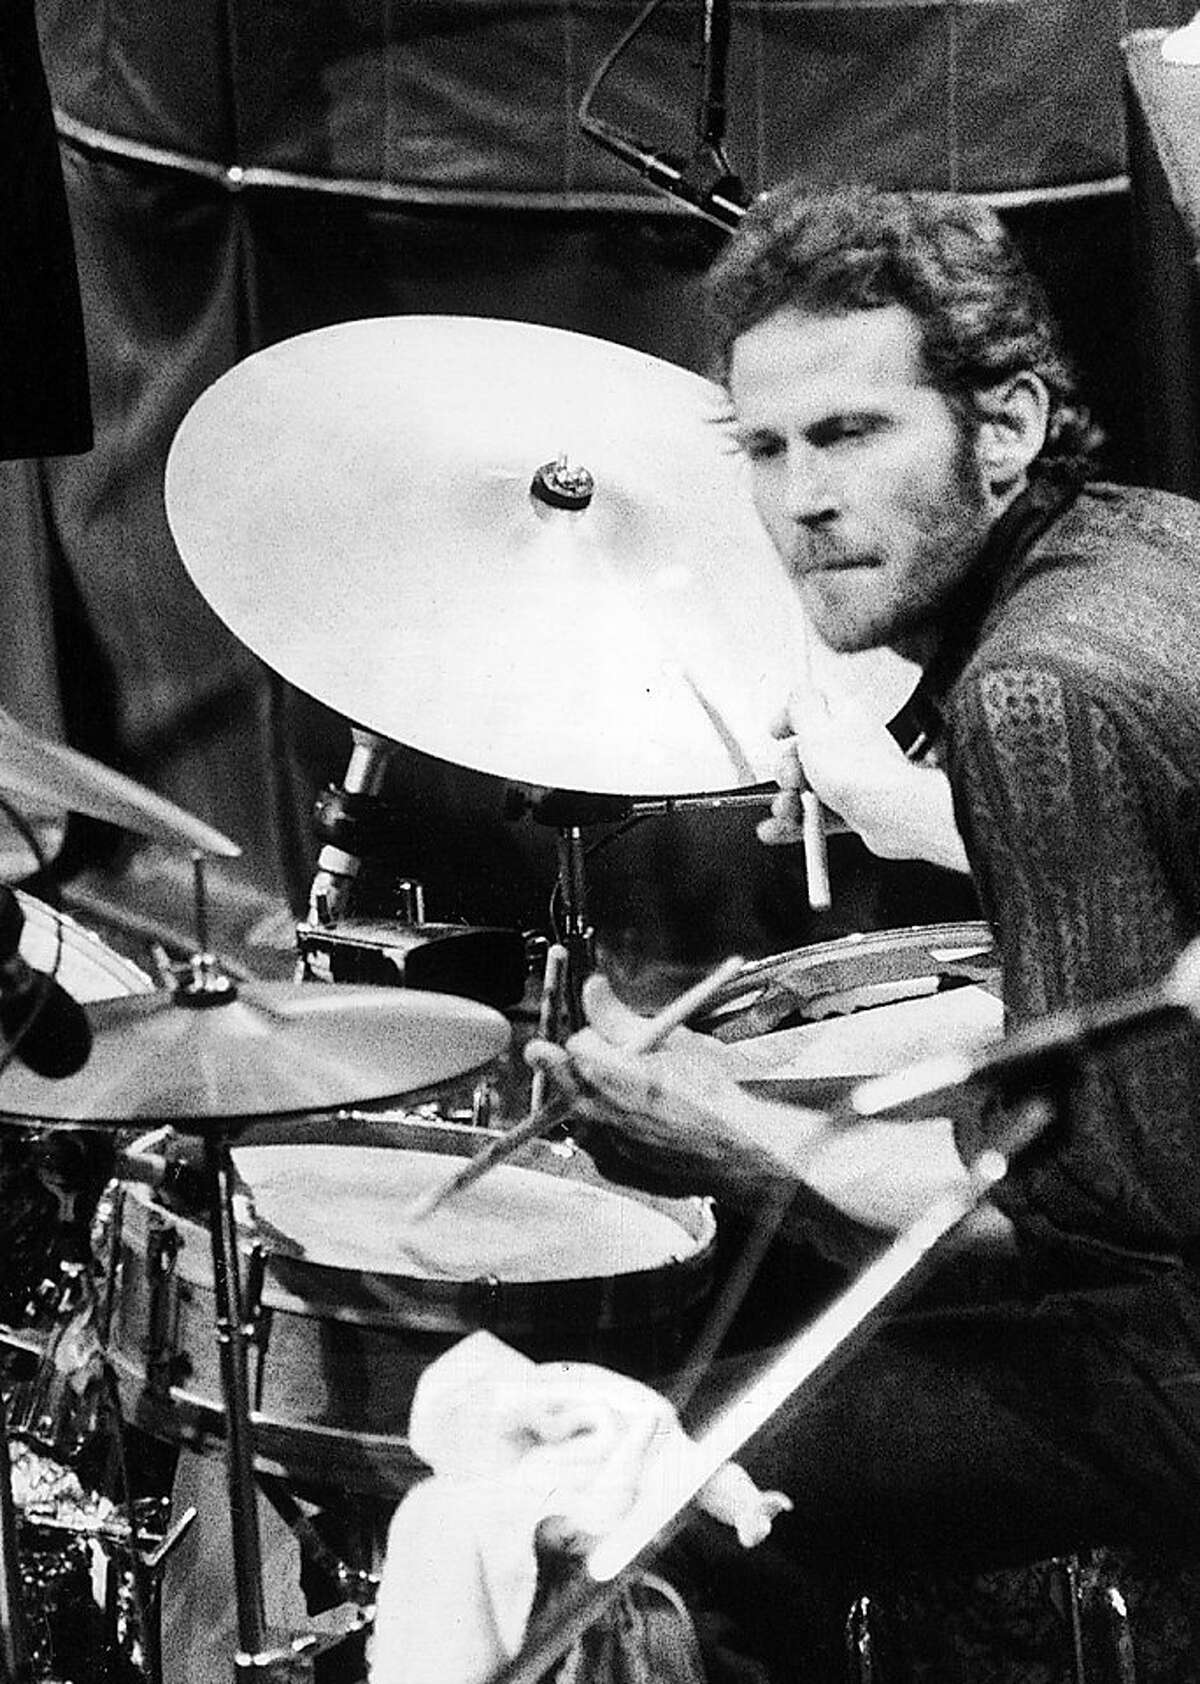 FILE - In this Nov. 27, 1976 file photo, Levon Helm, of The Band, playes drums at the band's final live performance at Winterland Auditorium in San Francisco. Helm, who was in the final stages of his battle with cancer, died Thursday, April 19, 2012 in New York. He was 71. He was a key member of The Band and lent his distinctive Southern voice to classics like